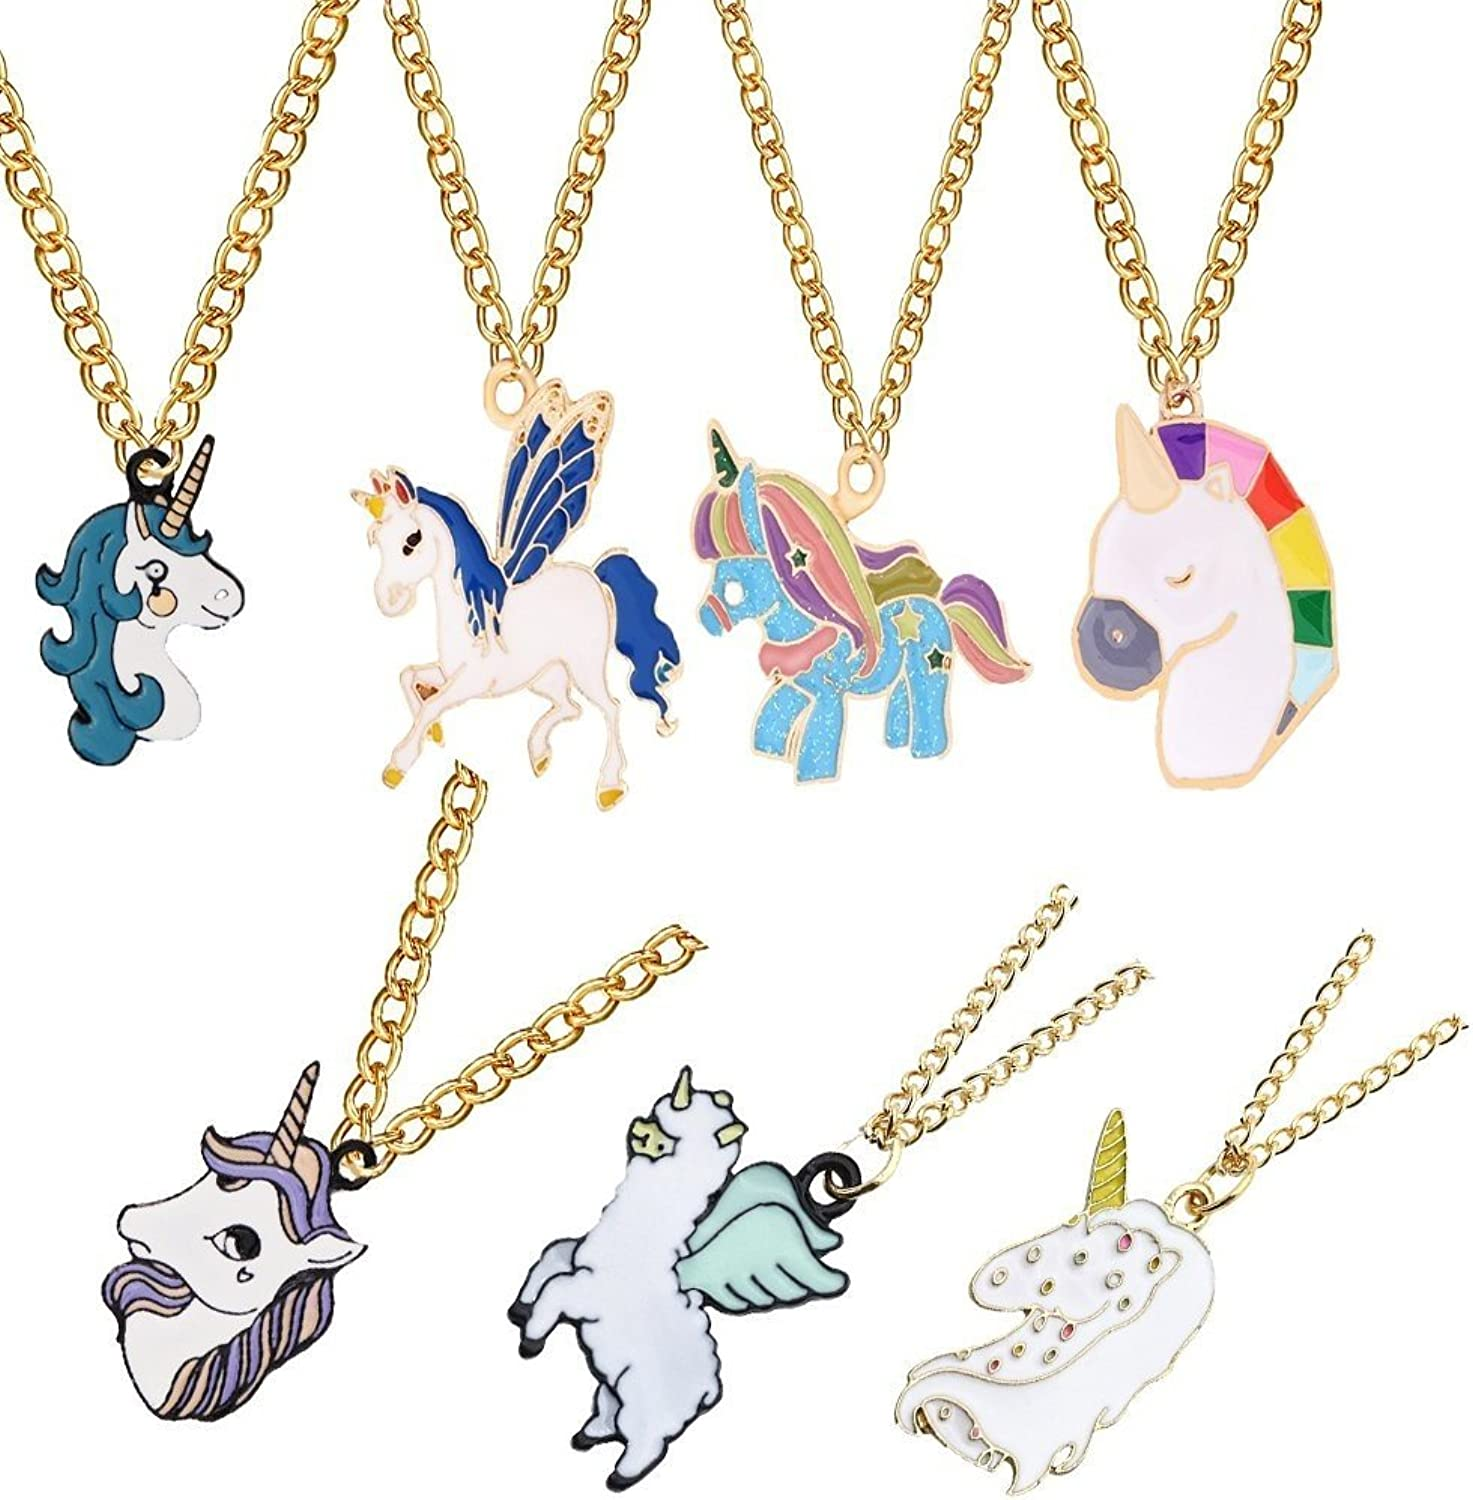 Rainbow Unicorn Necklace, LQQDD Metal Unicorn Party Favors Animal Necklace Birthday Party Supplies Party Games (7 Pack)